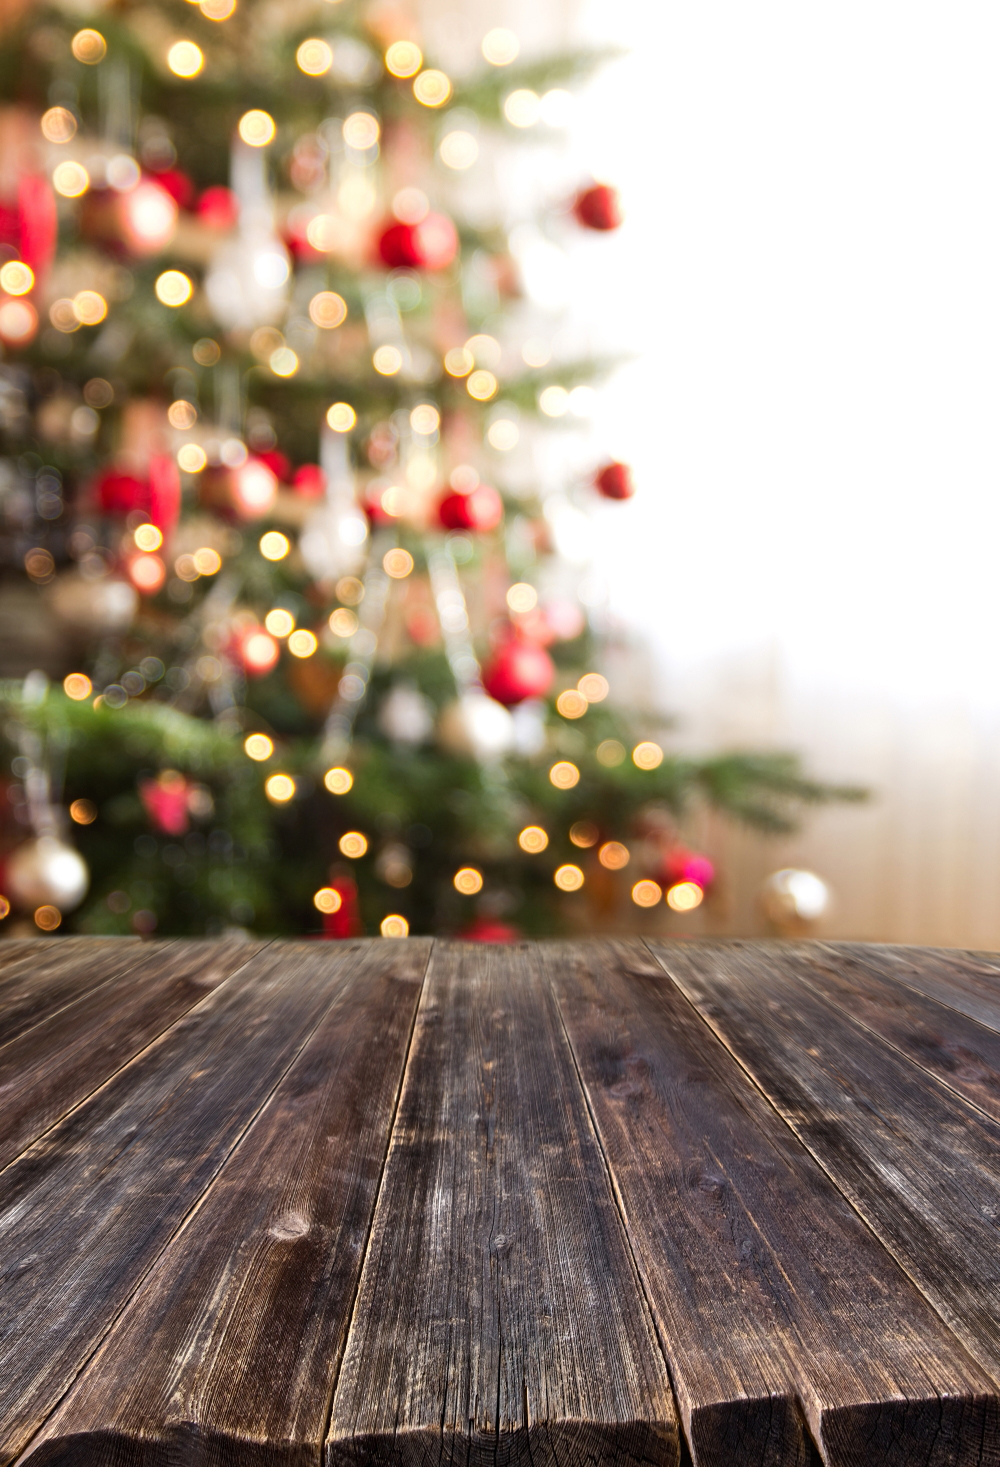 christmas decorations for home photography backdrops ...